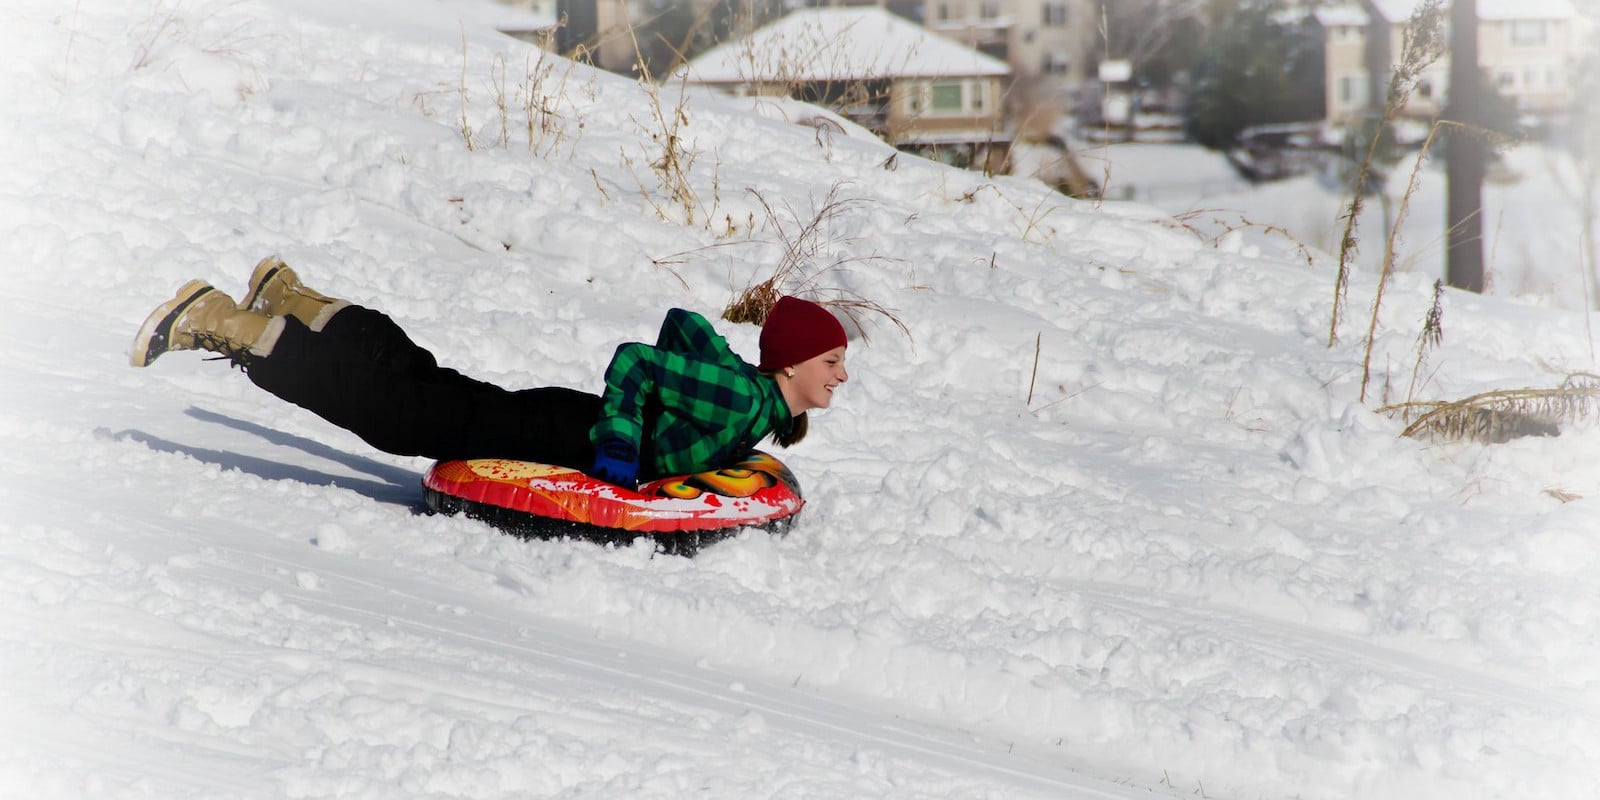 Image of a person snow tubing in Littleton, Colorado